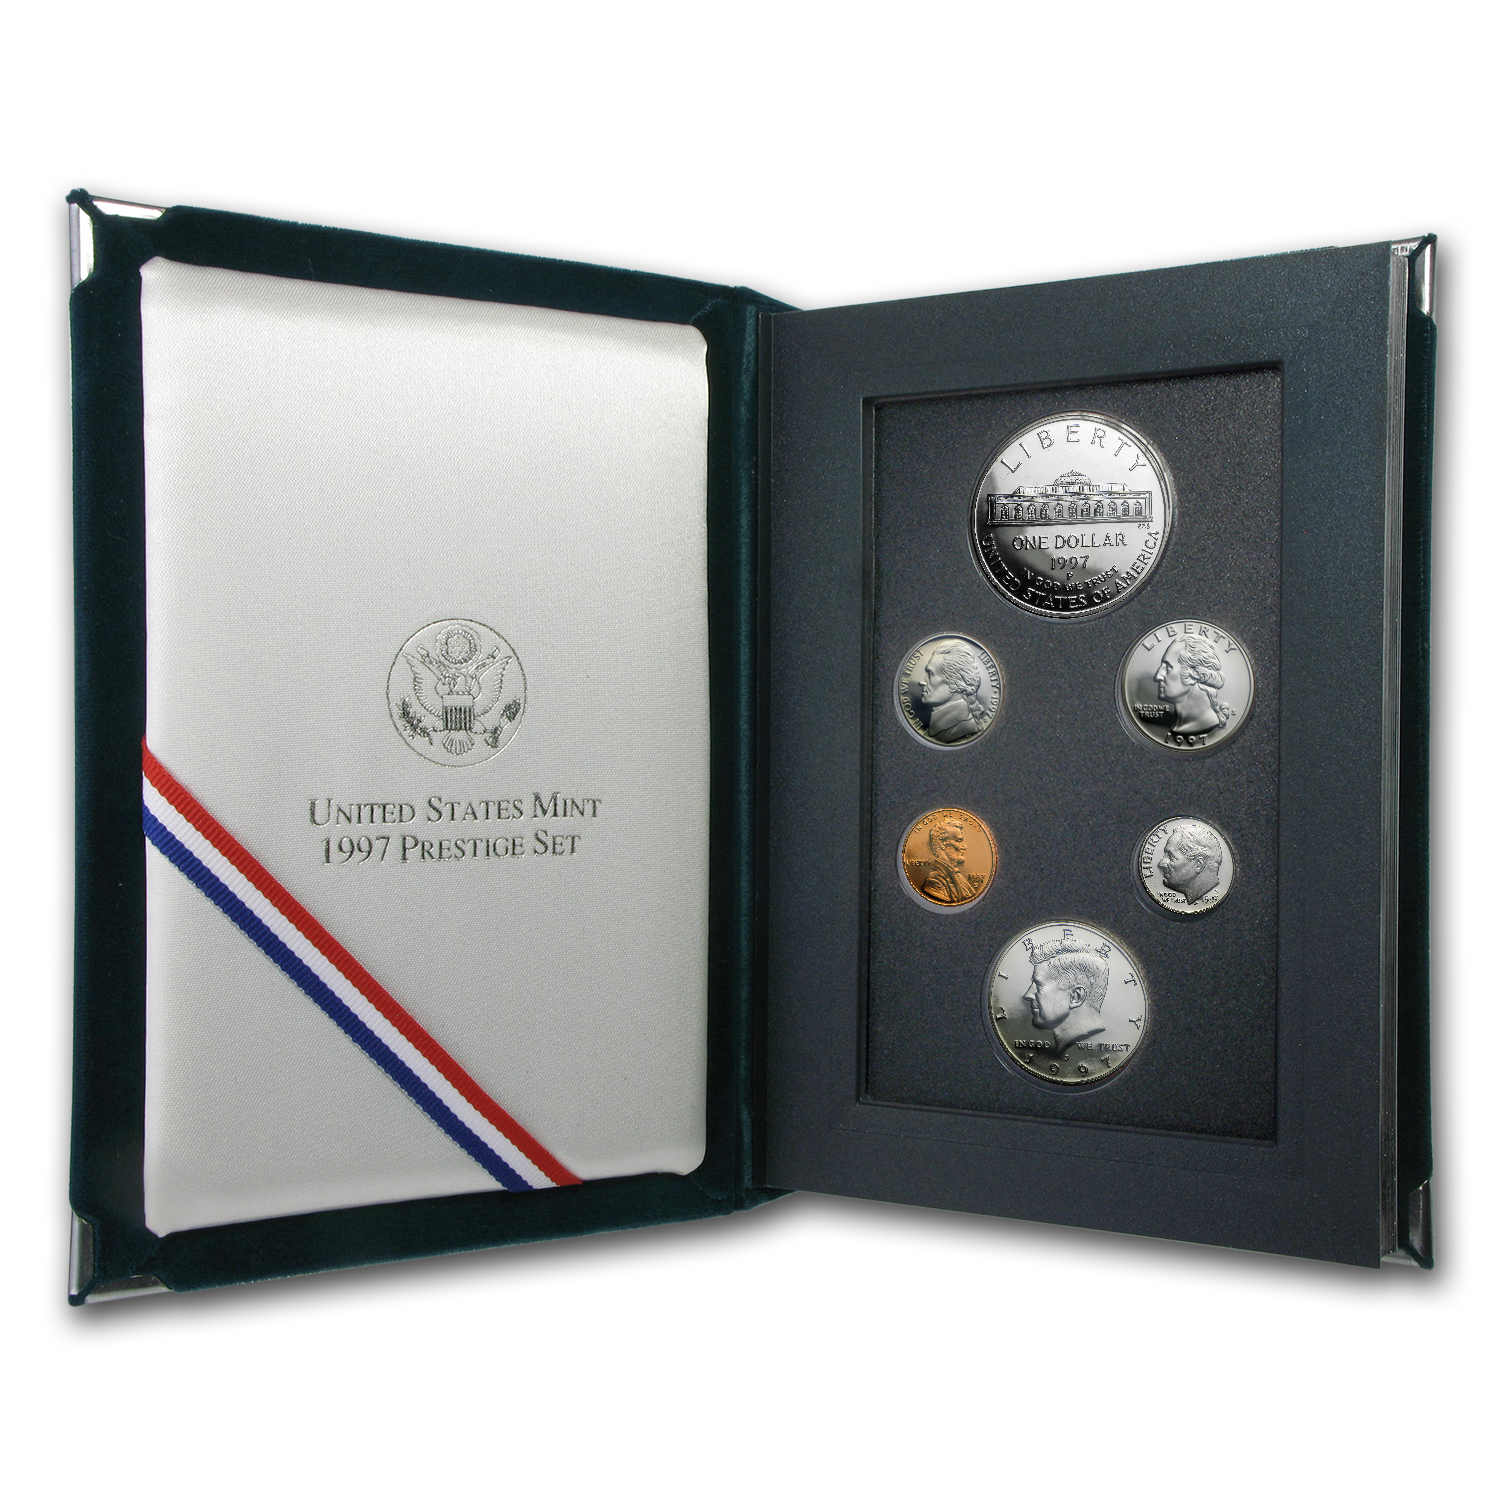 1997 U.S. Mint Prestige Set